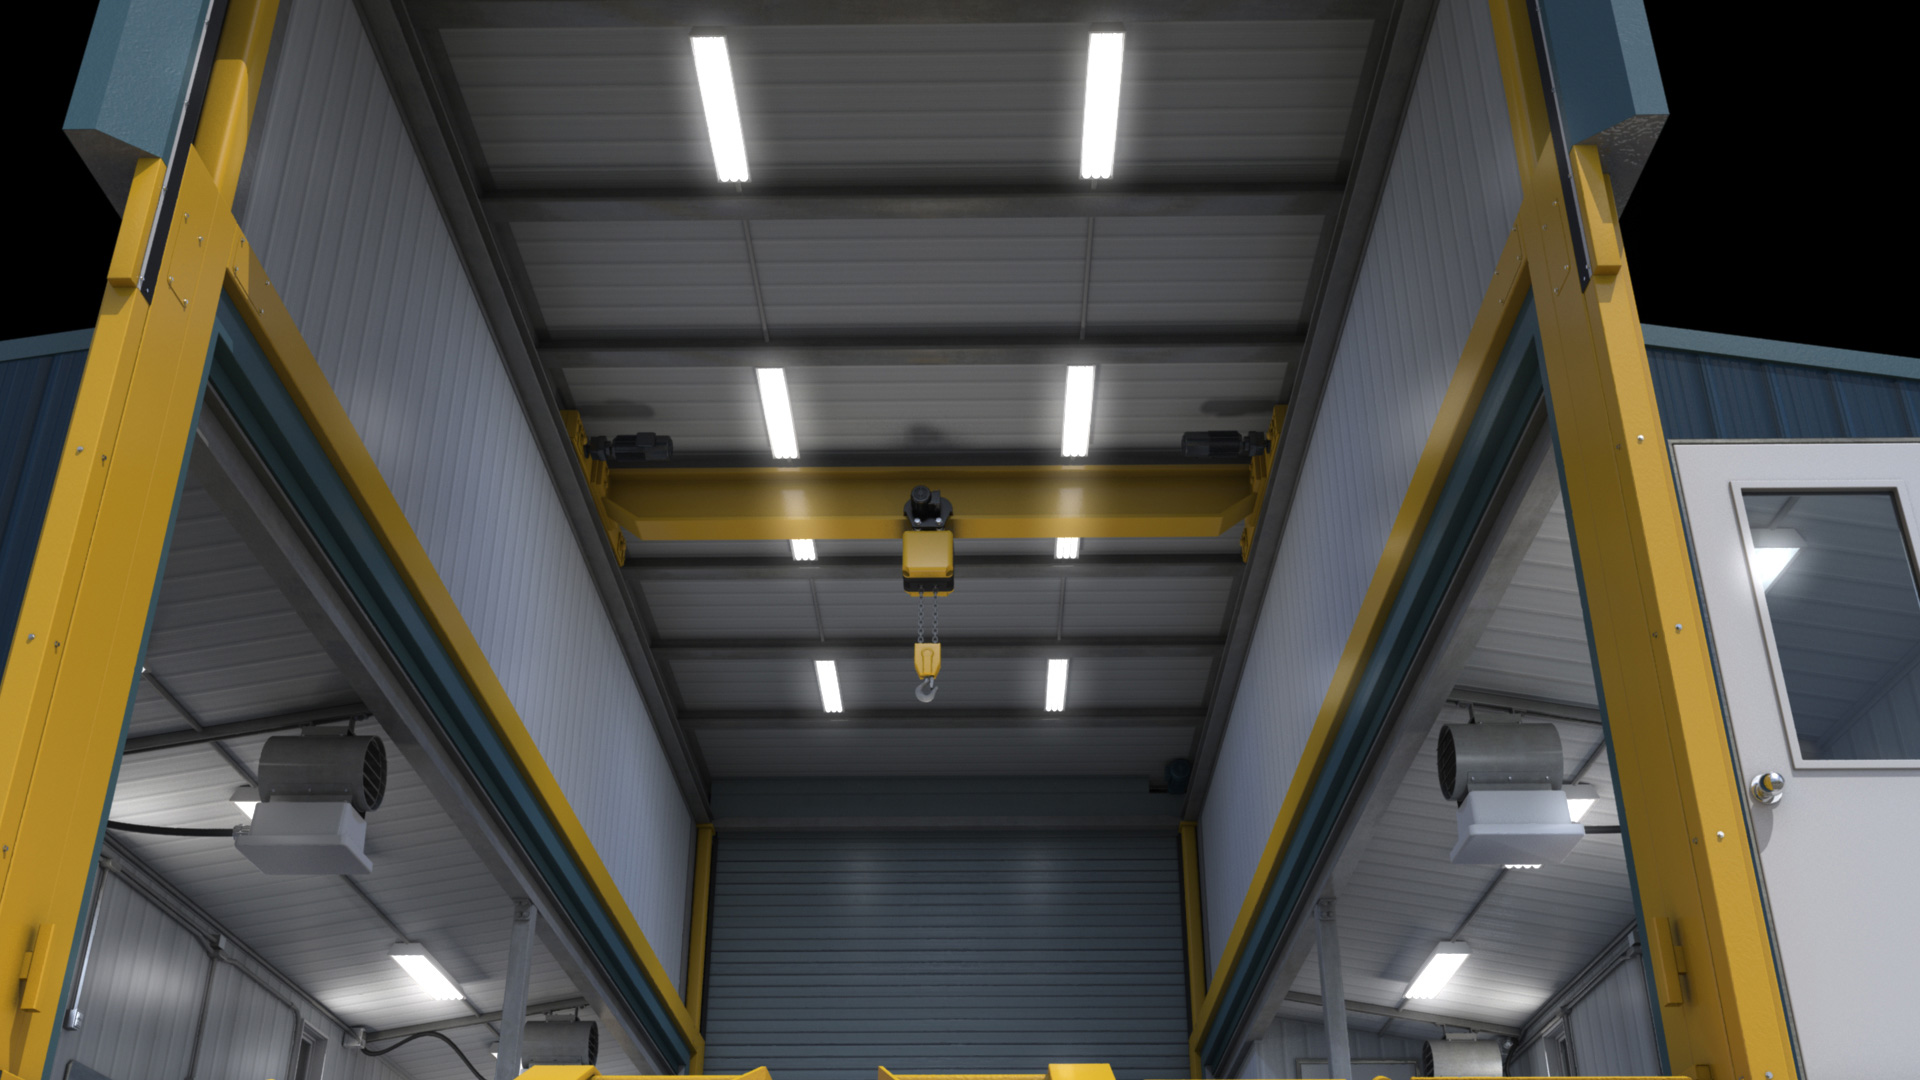 extreme portable buildings trans4mer main structure main ceiling thumbnail